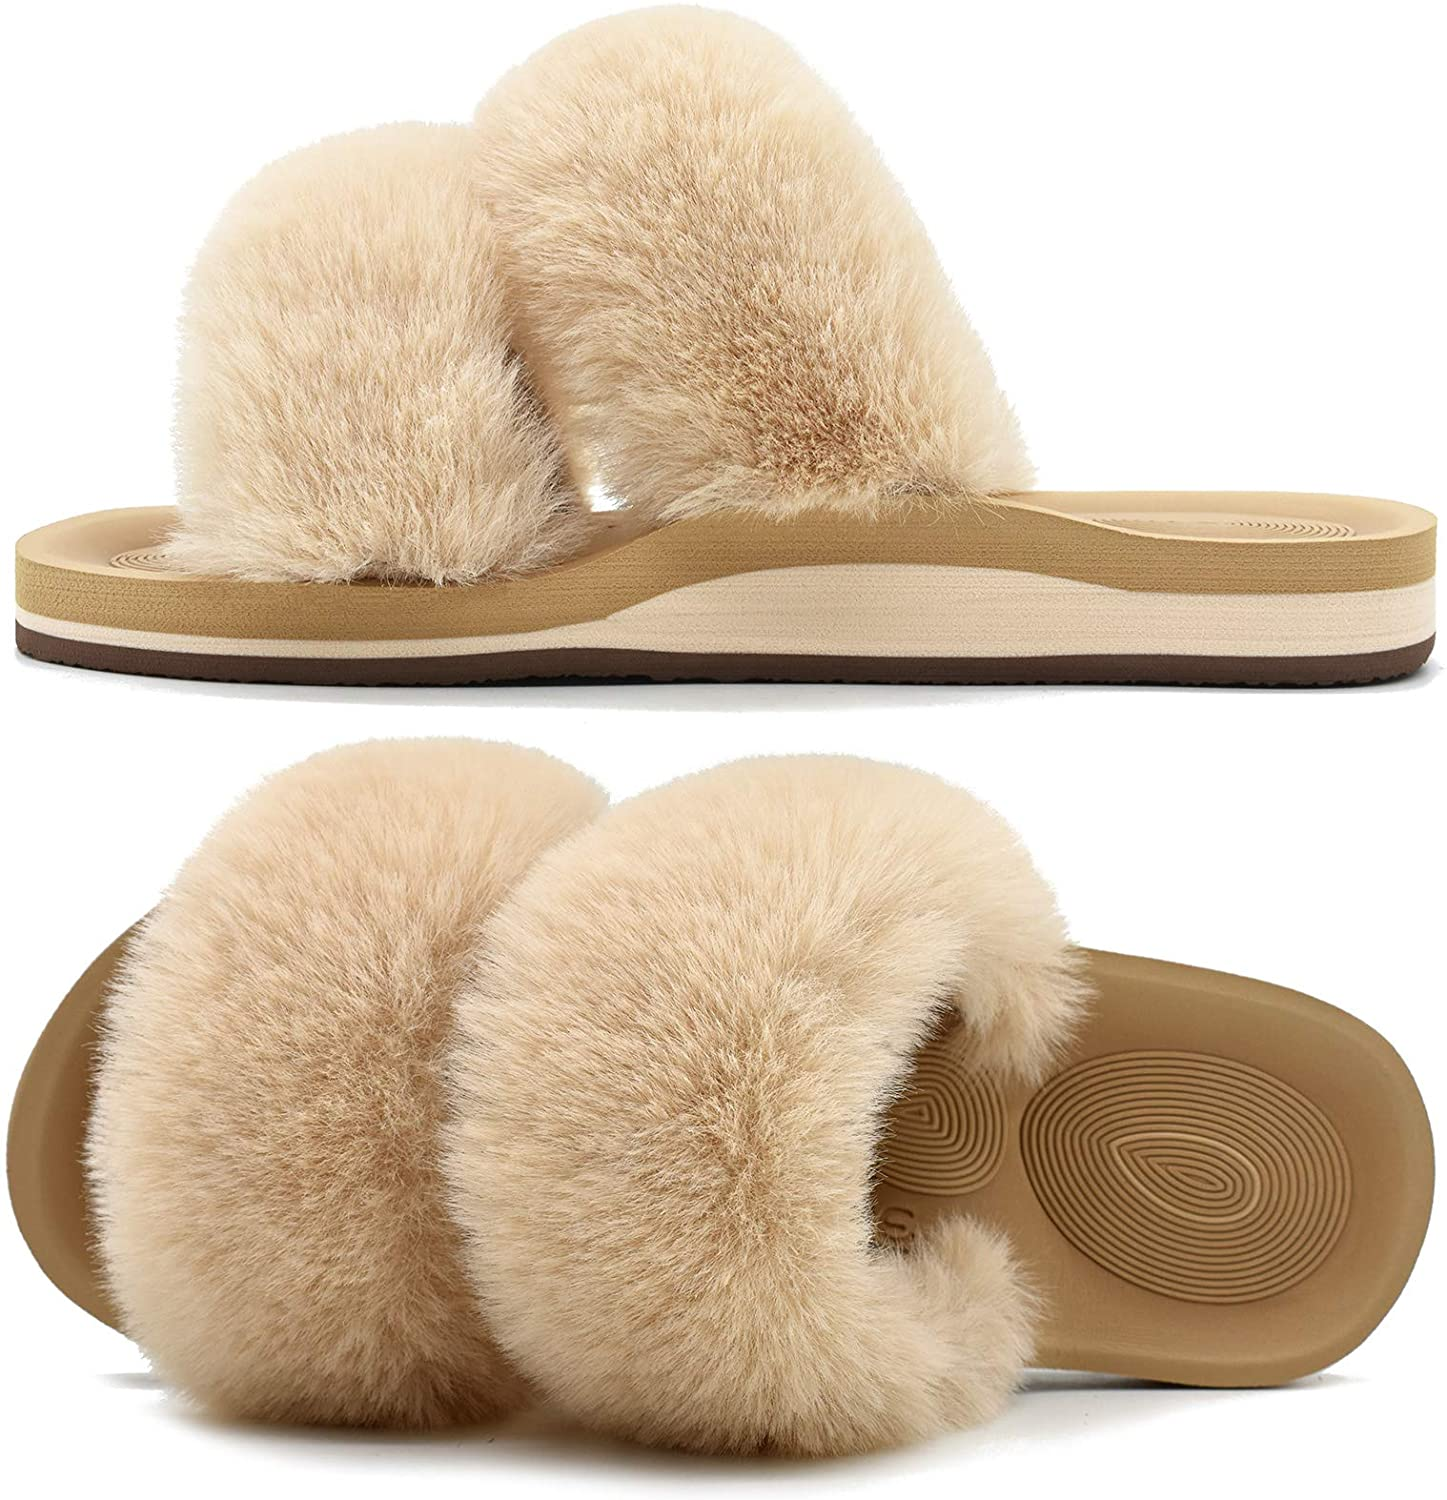 COFACE Womens Fur Sliders Plush Fluffy Slippers Memory Foam Flat Sandals for Ladies Arch Support Nonslip Fur Slides House Shoes Indoor Outdoor